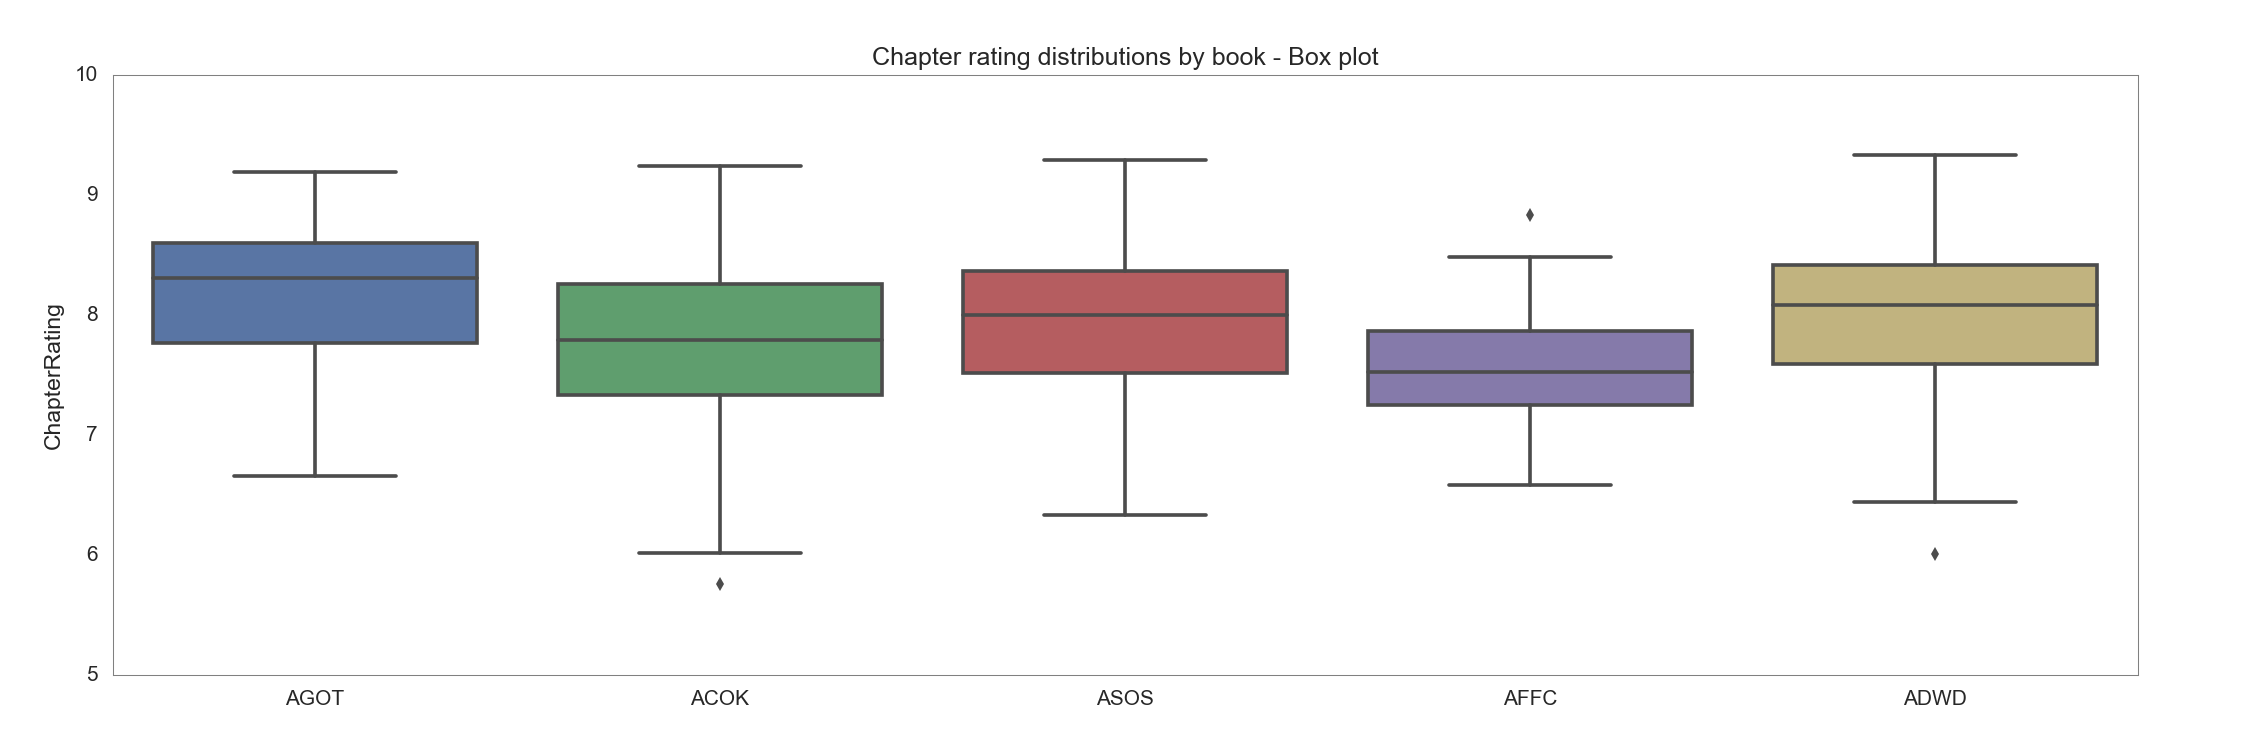 Chapter ratings distribution by book - box